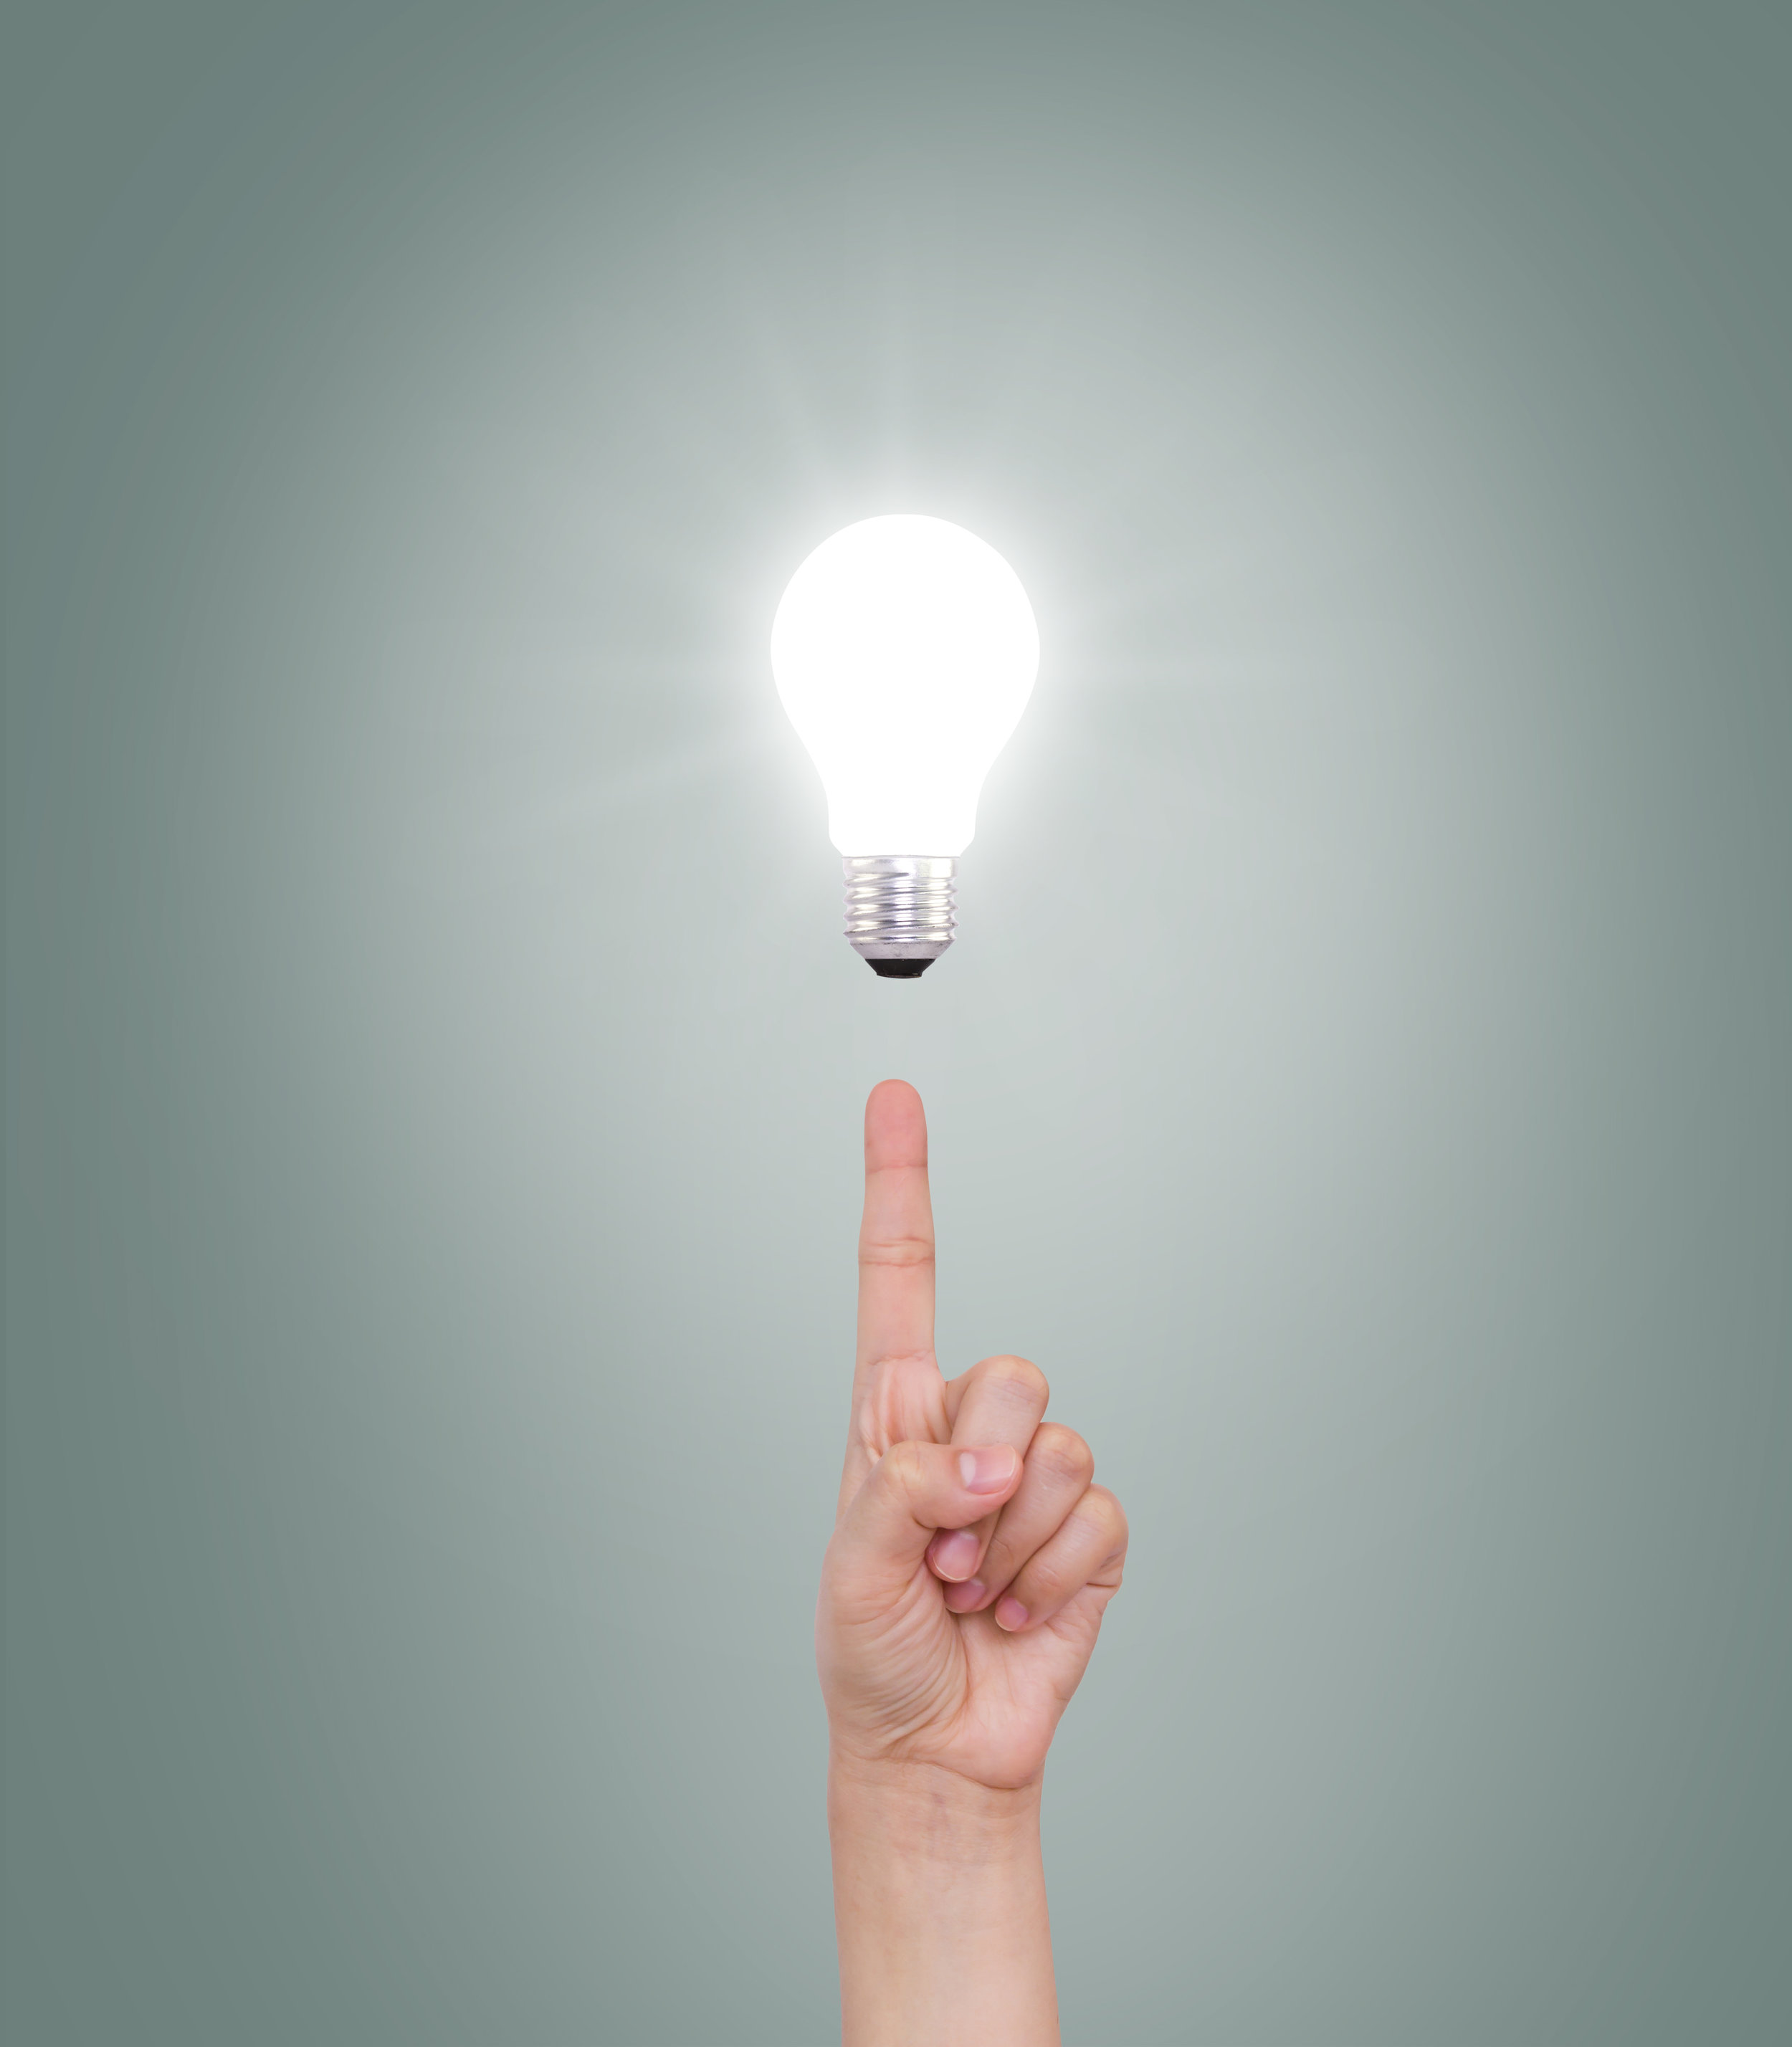 Hand point to Light bulb